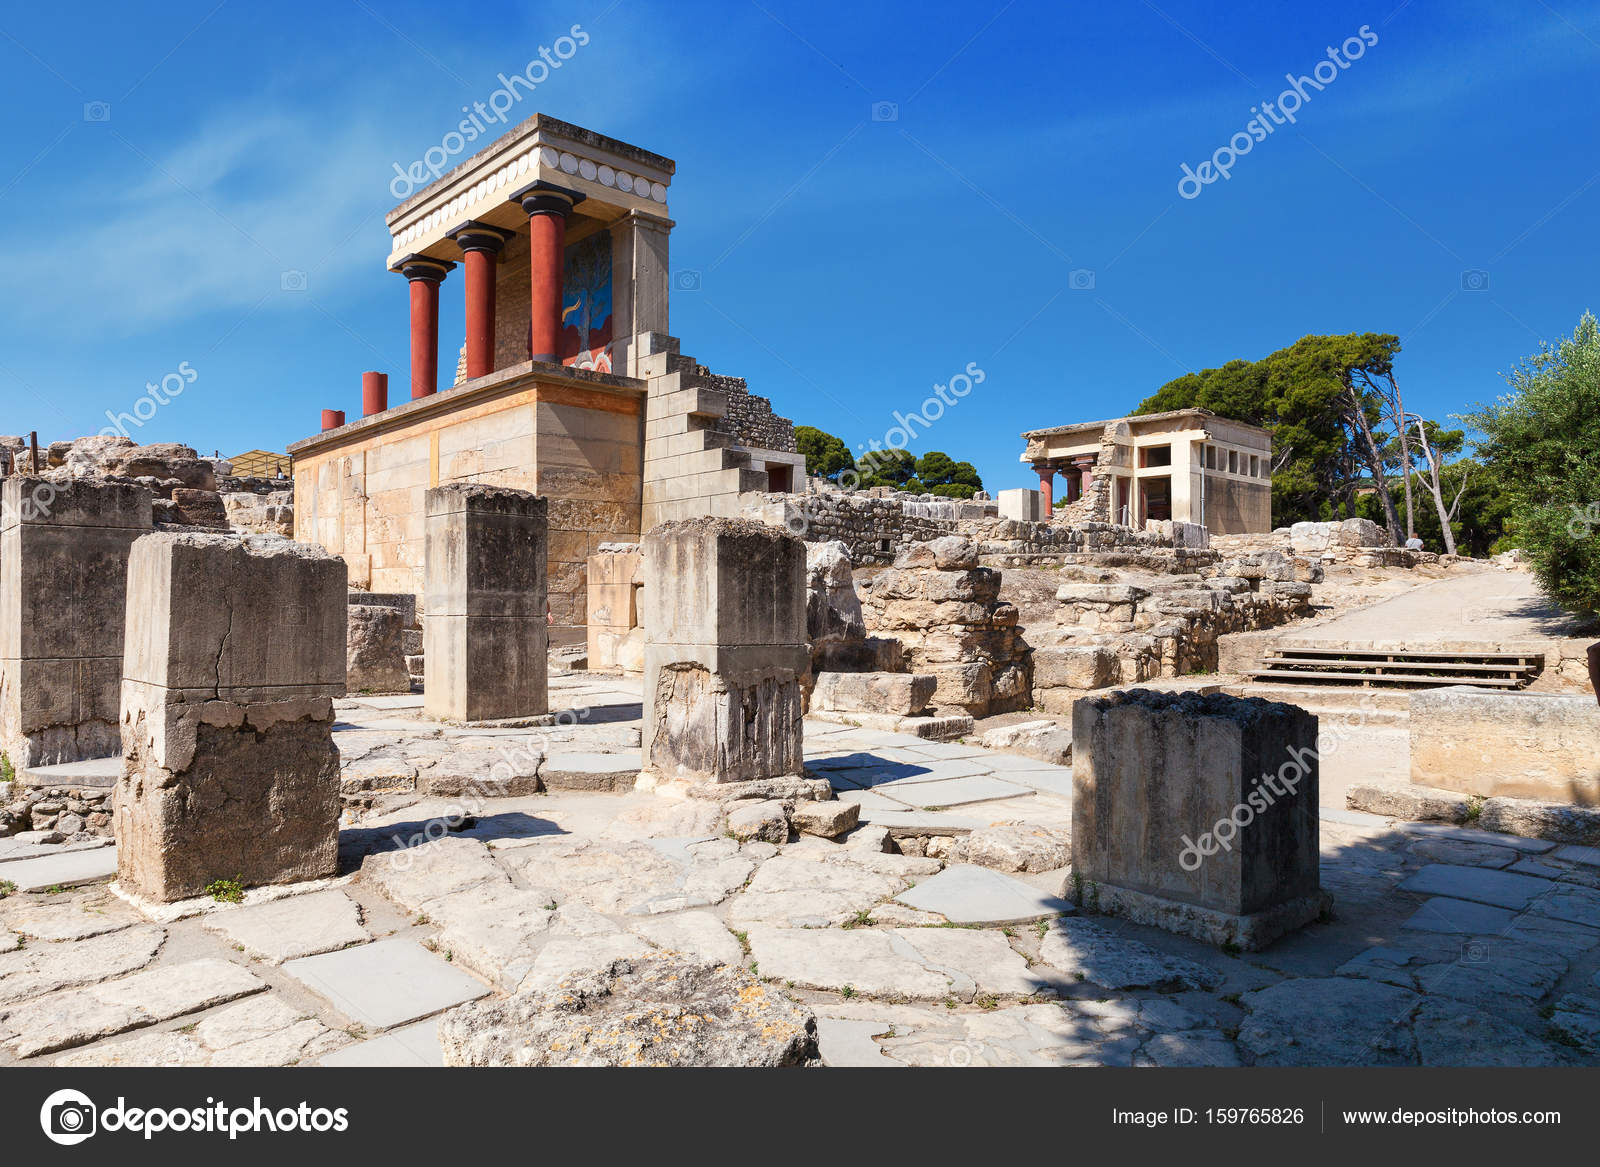 Knossos palace with ancient columns of the minoan civilization knossos palace with ancient columns of the minoan civilization and culture at heraklion without people crete greece photo by honzahruby sciox Images